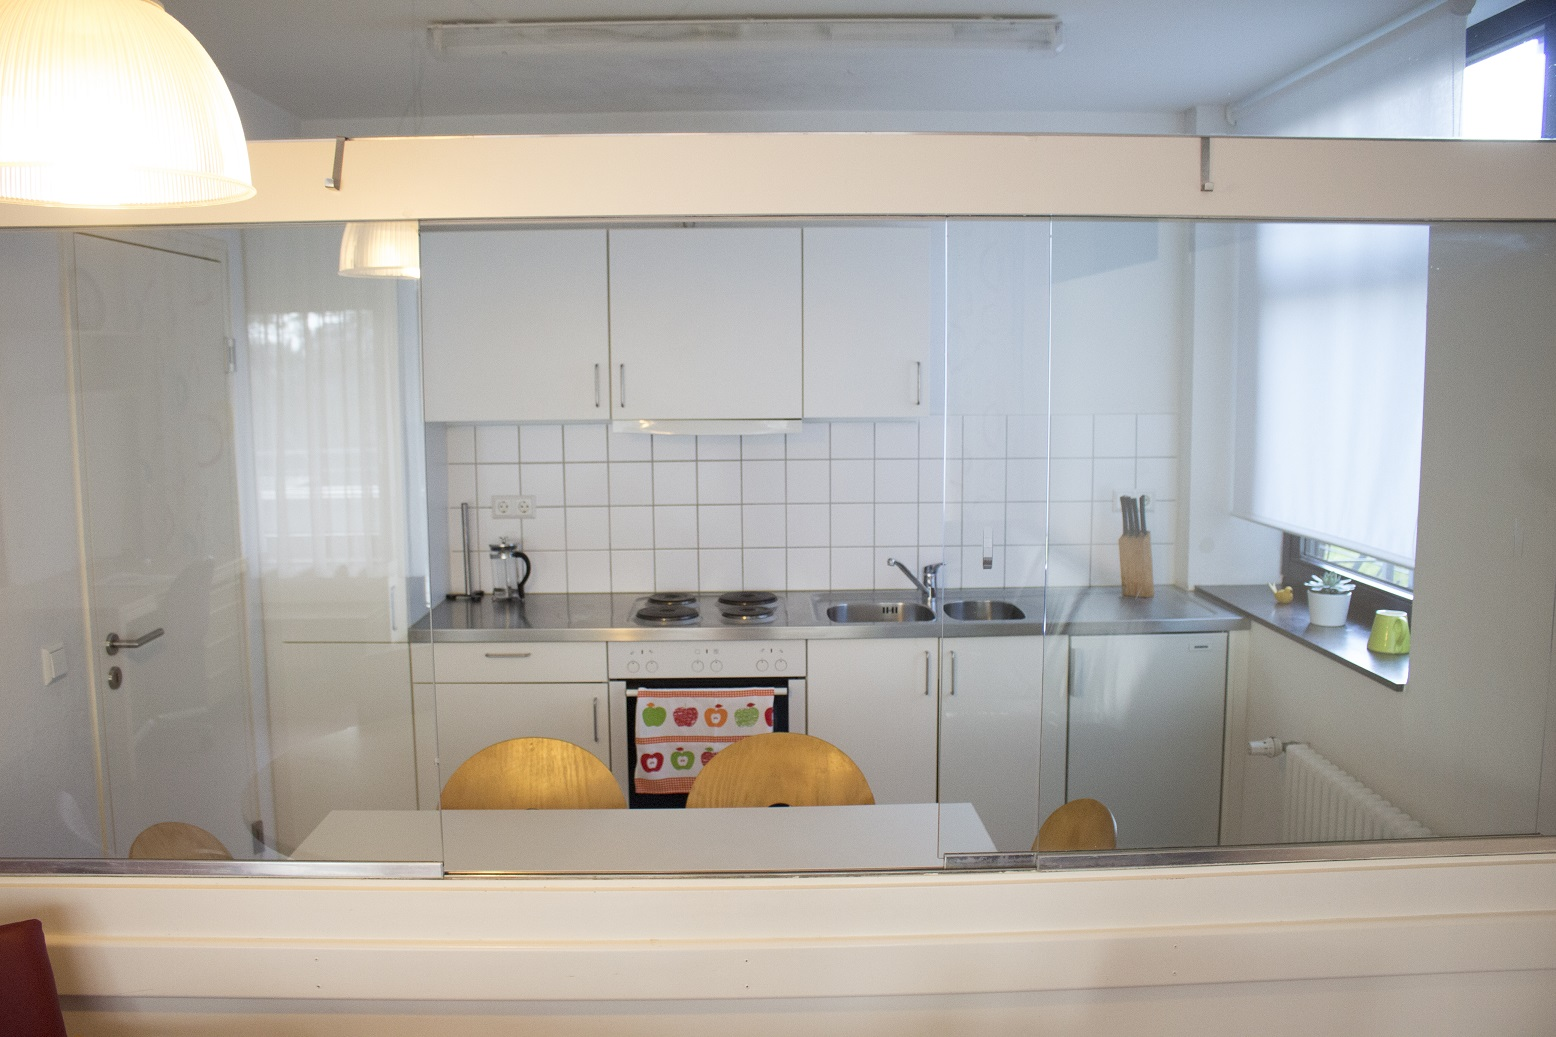 Image: kitchen unit in the background equipped with a fridge, 4 hotplates and a sink, in the foreground a kitchentable for 4 - 6 people